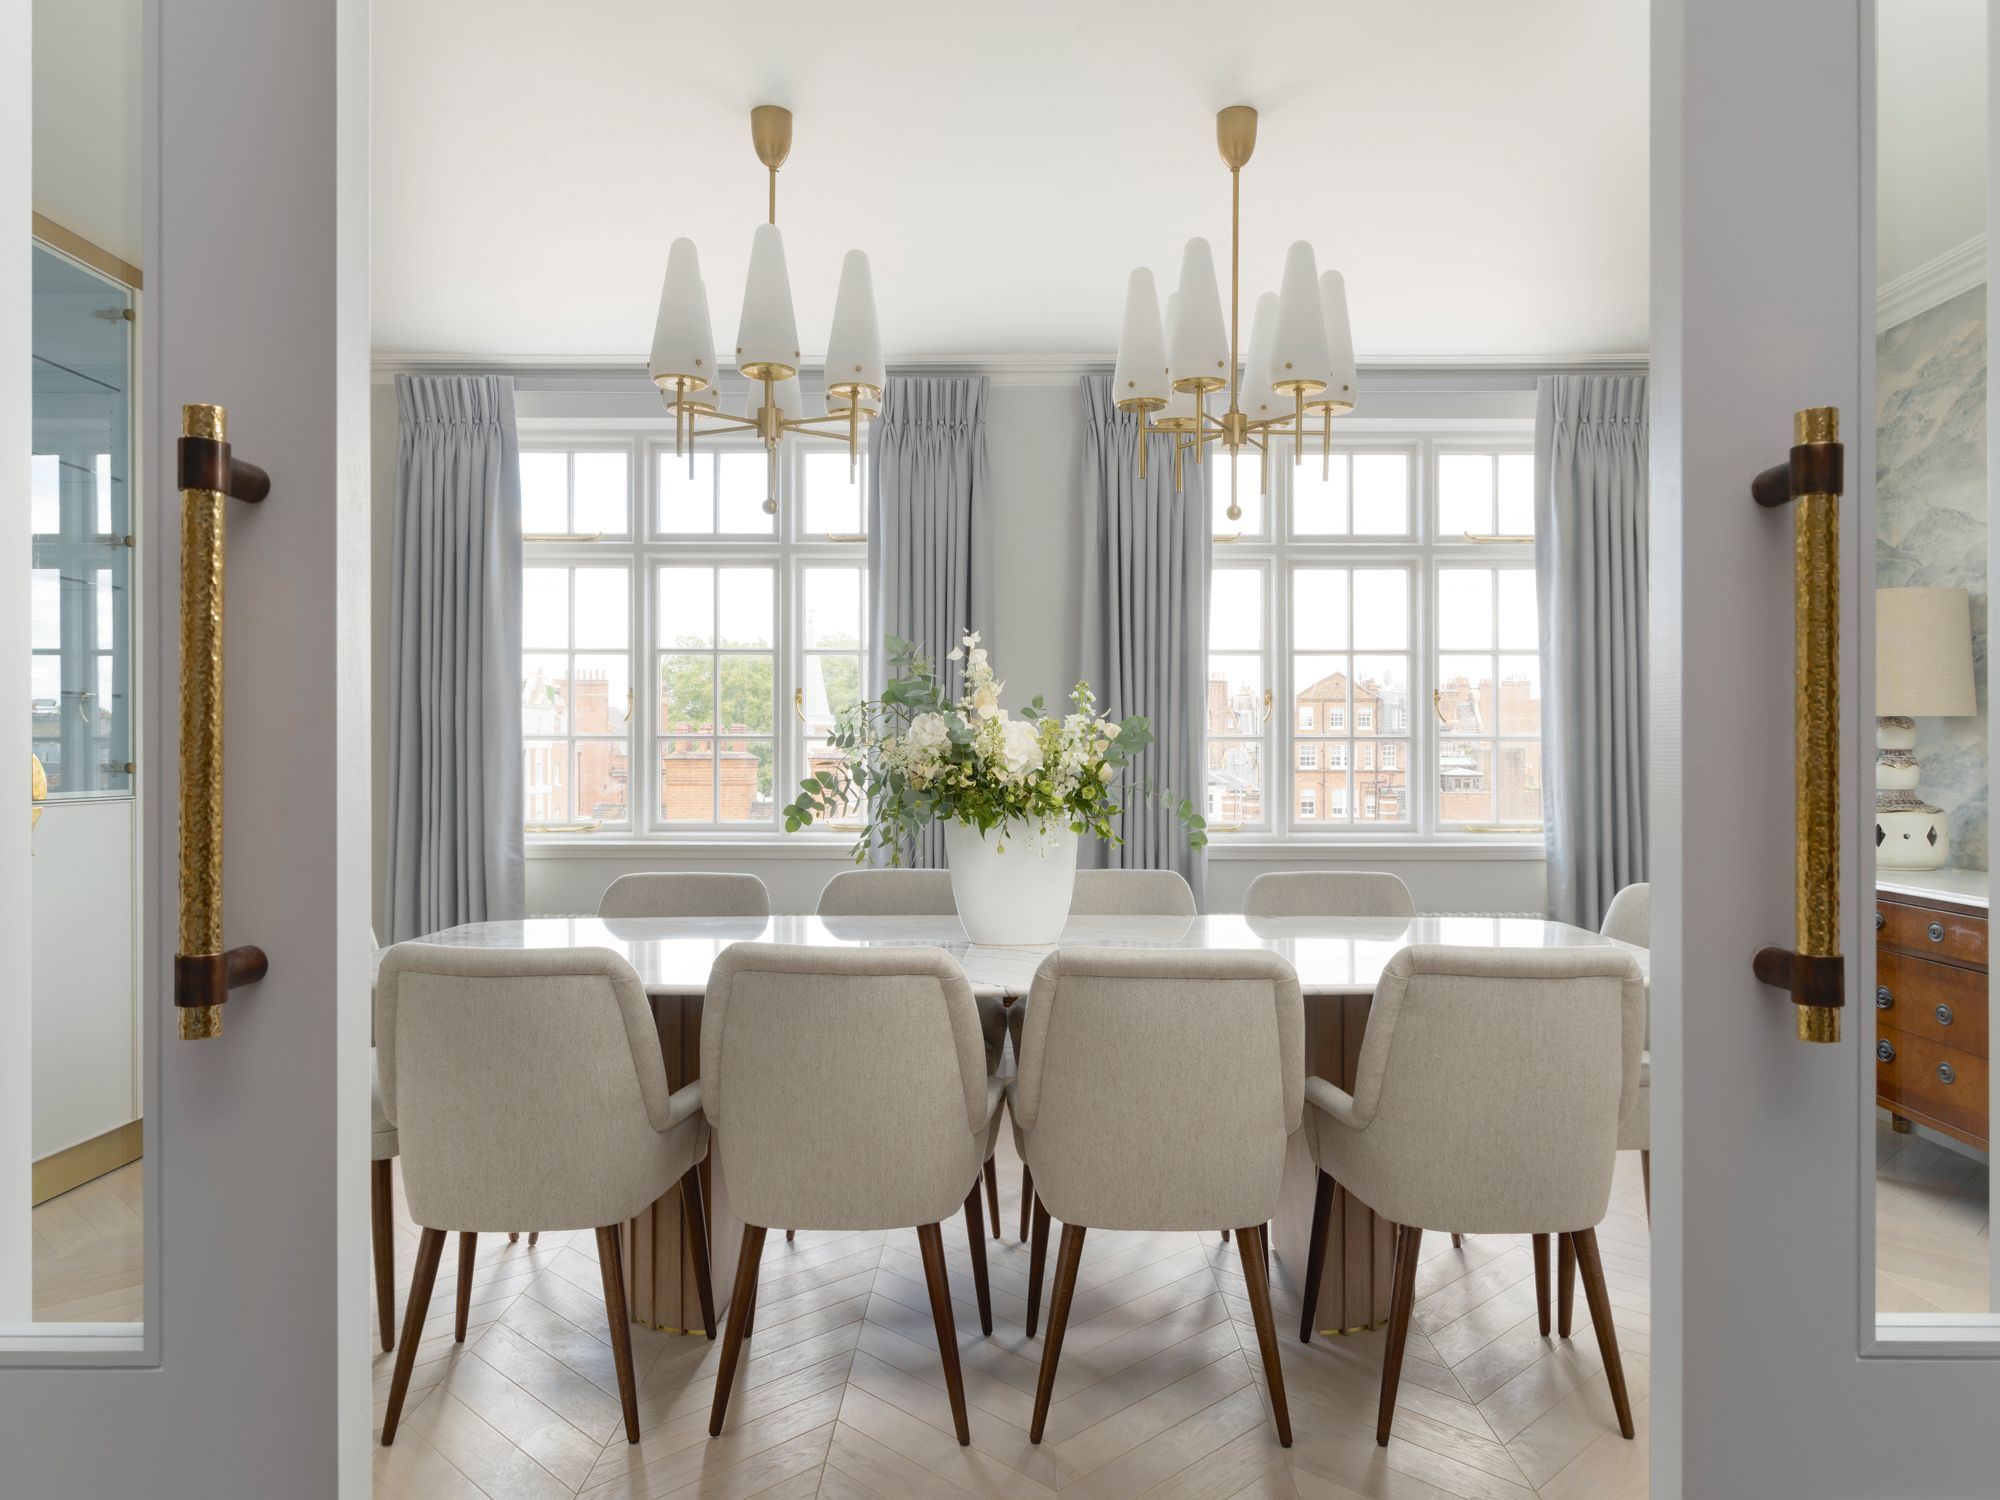 The colour scheme of the dining area references the grey tones of the cloud wallpaper from Zoffany